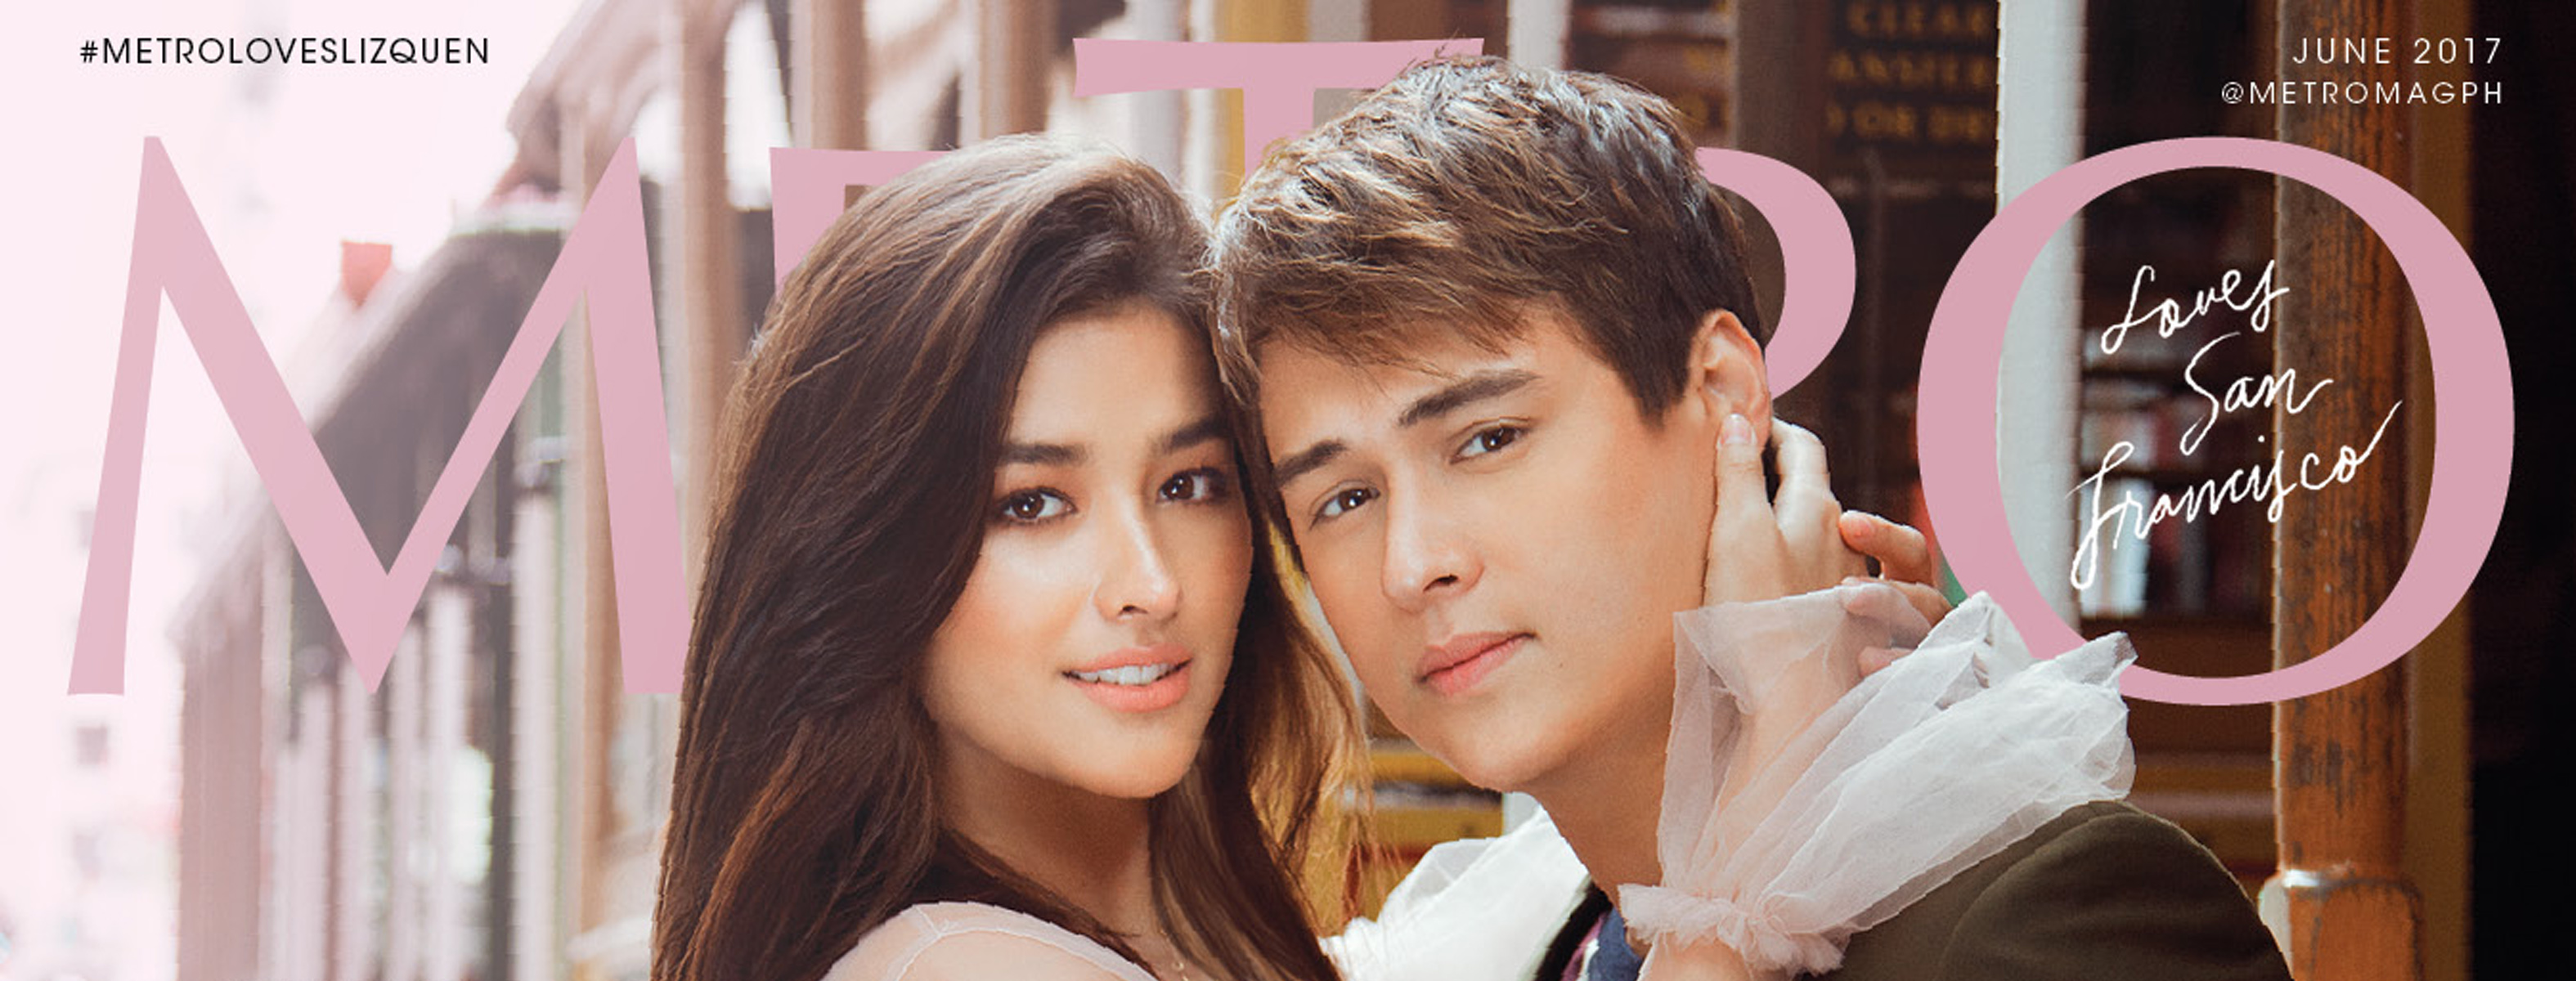 'Metro' revisits the Summer of Love with 'LizQuen'